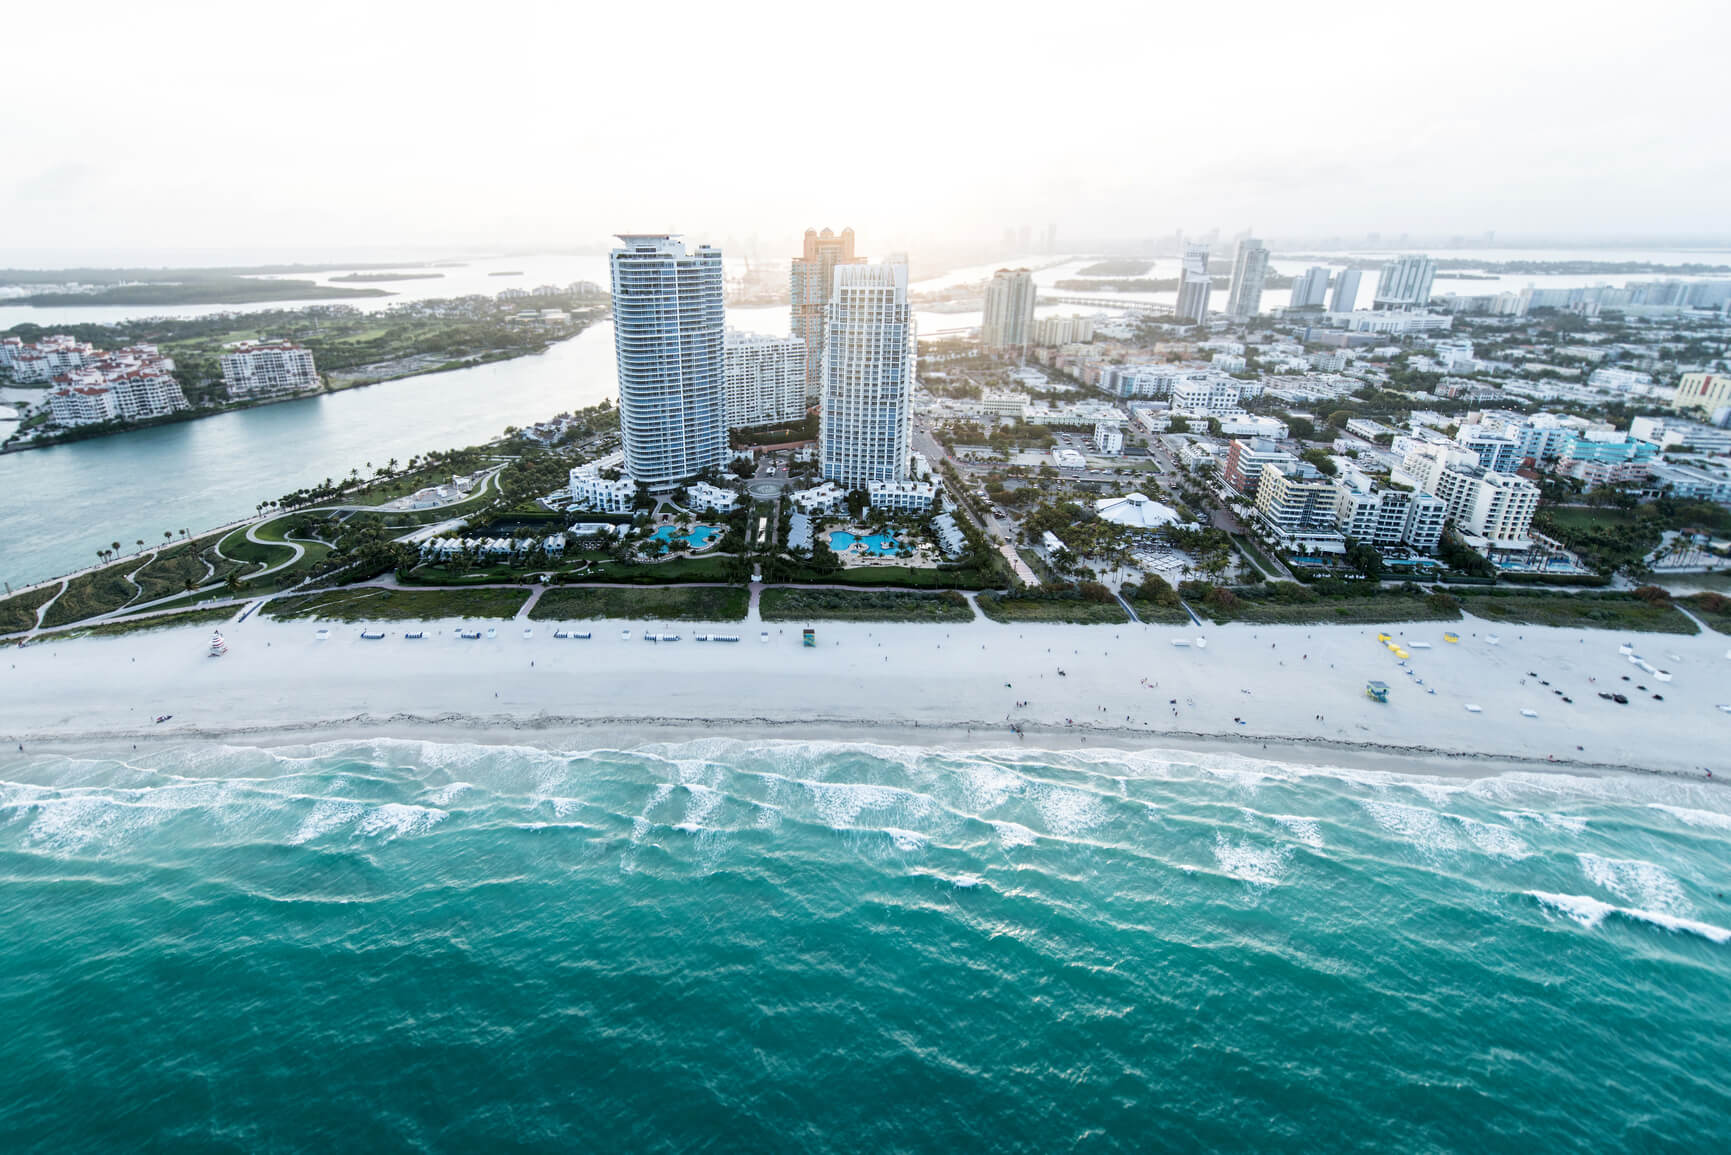 Oslo, Norway to Miami, USA for only €206 roundtrip